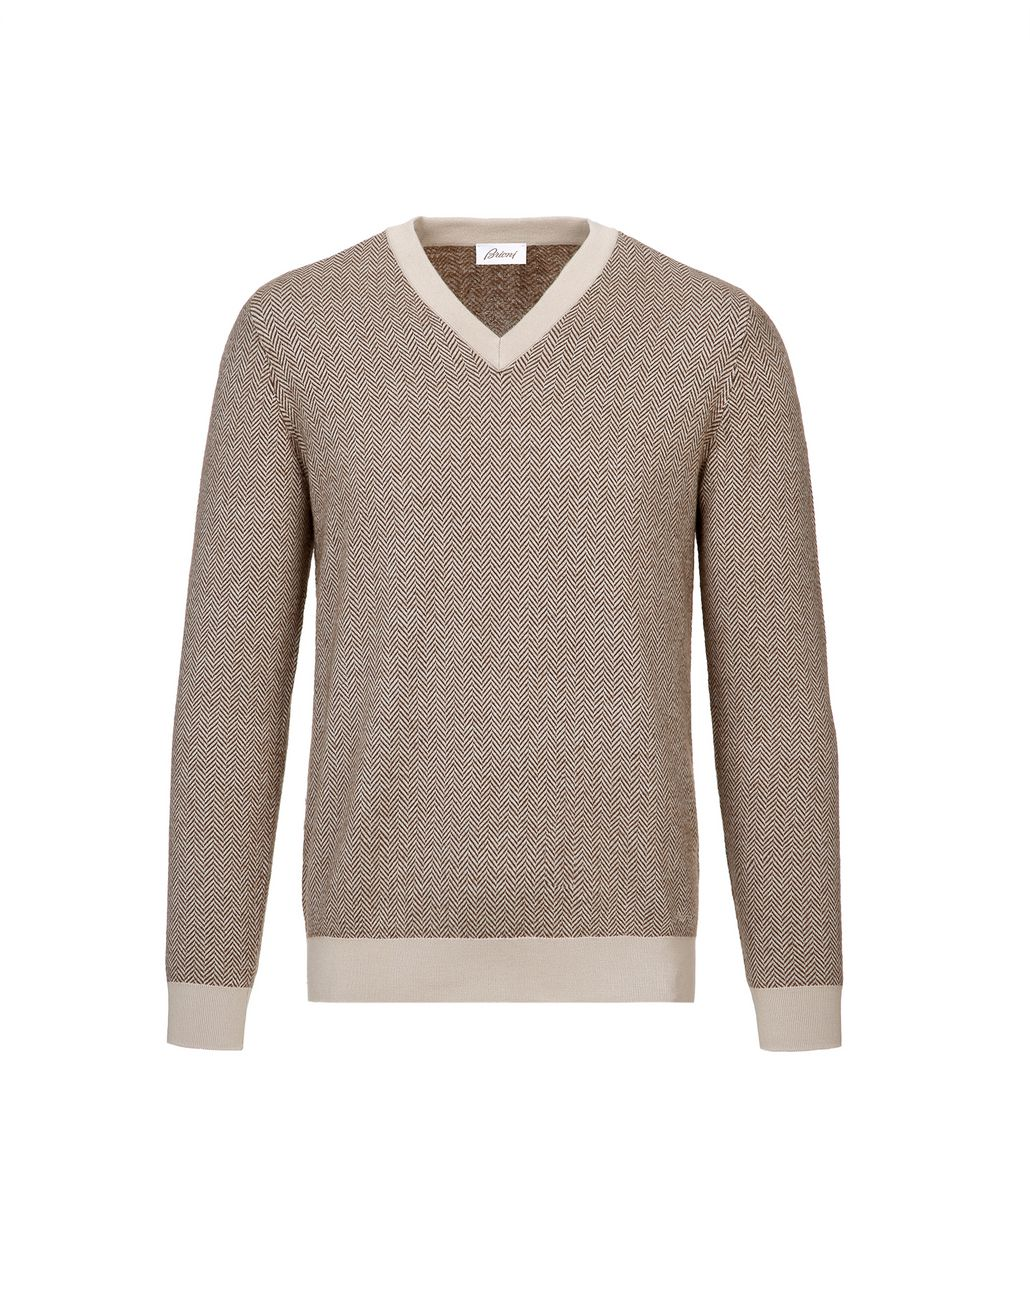 BRIONI Camel and Brown Herringbone V Neck Sweater Knitwear Man f